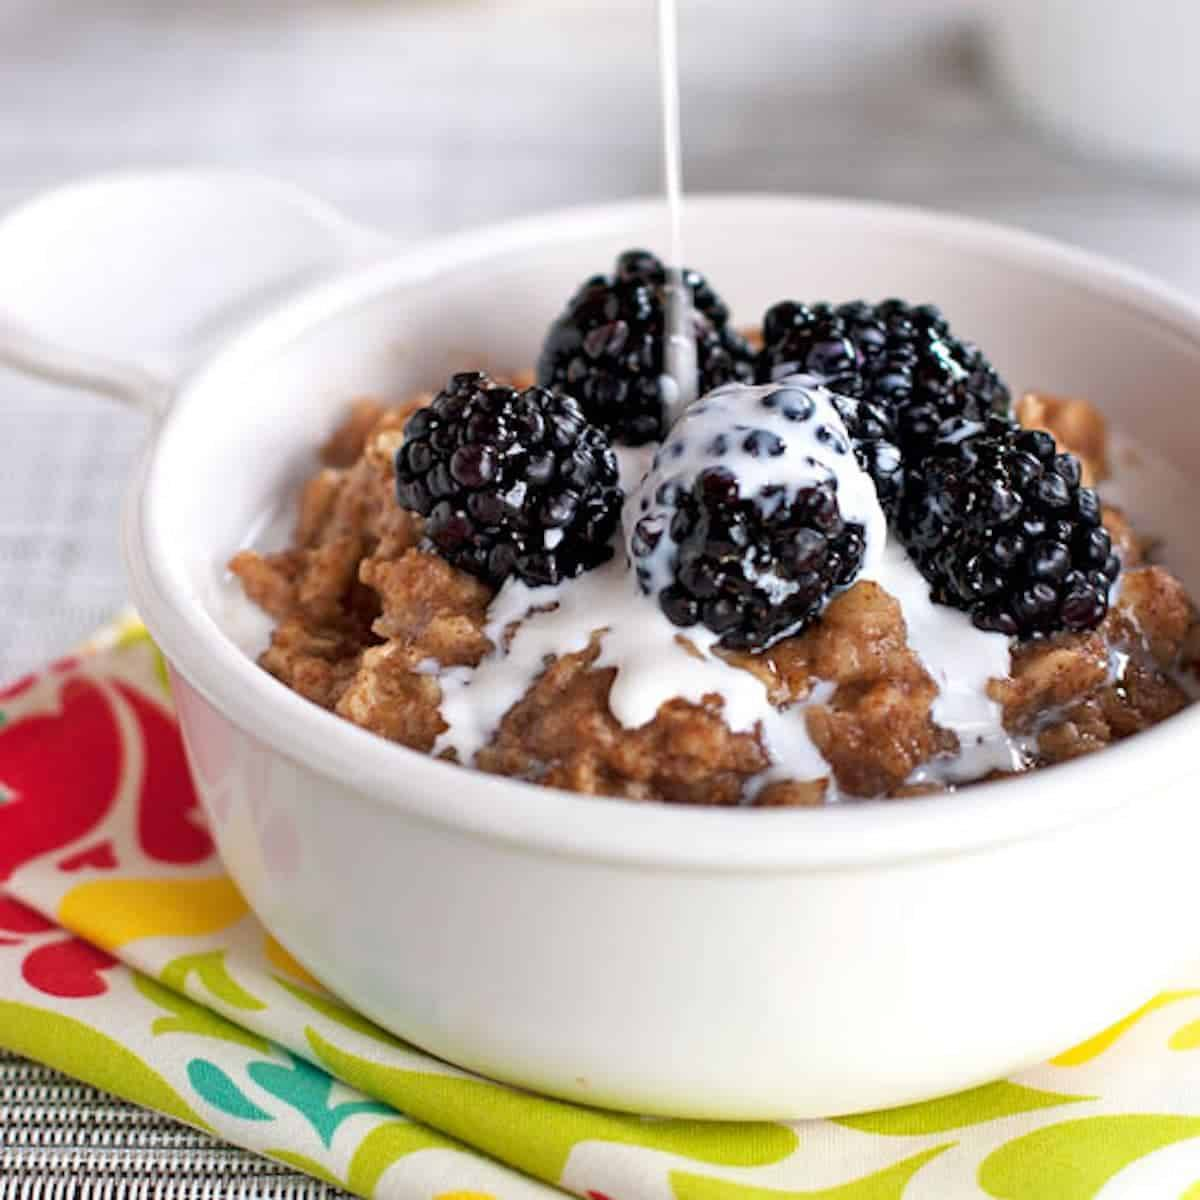 Blackberries and cream oats topped with honey and fresh blackberries.